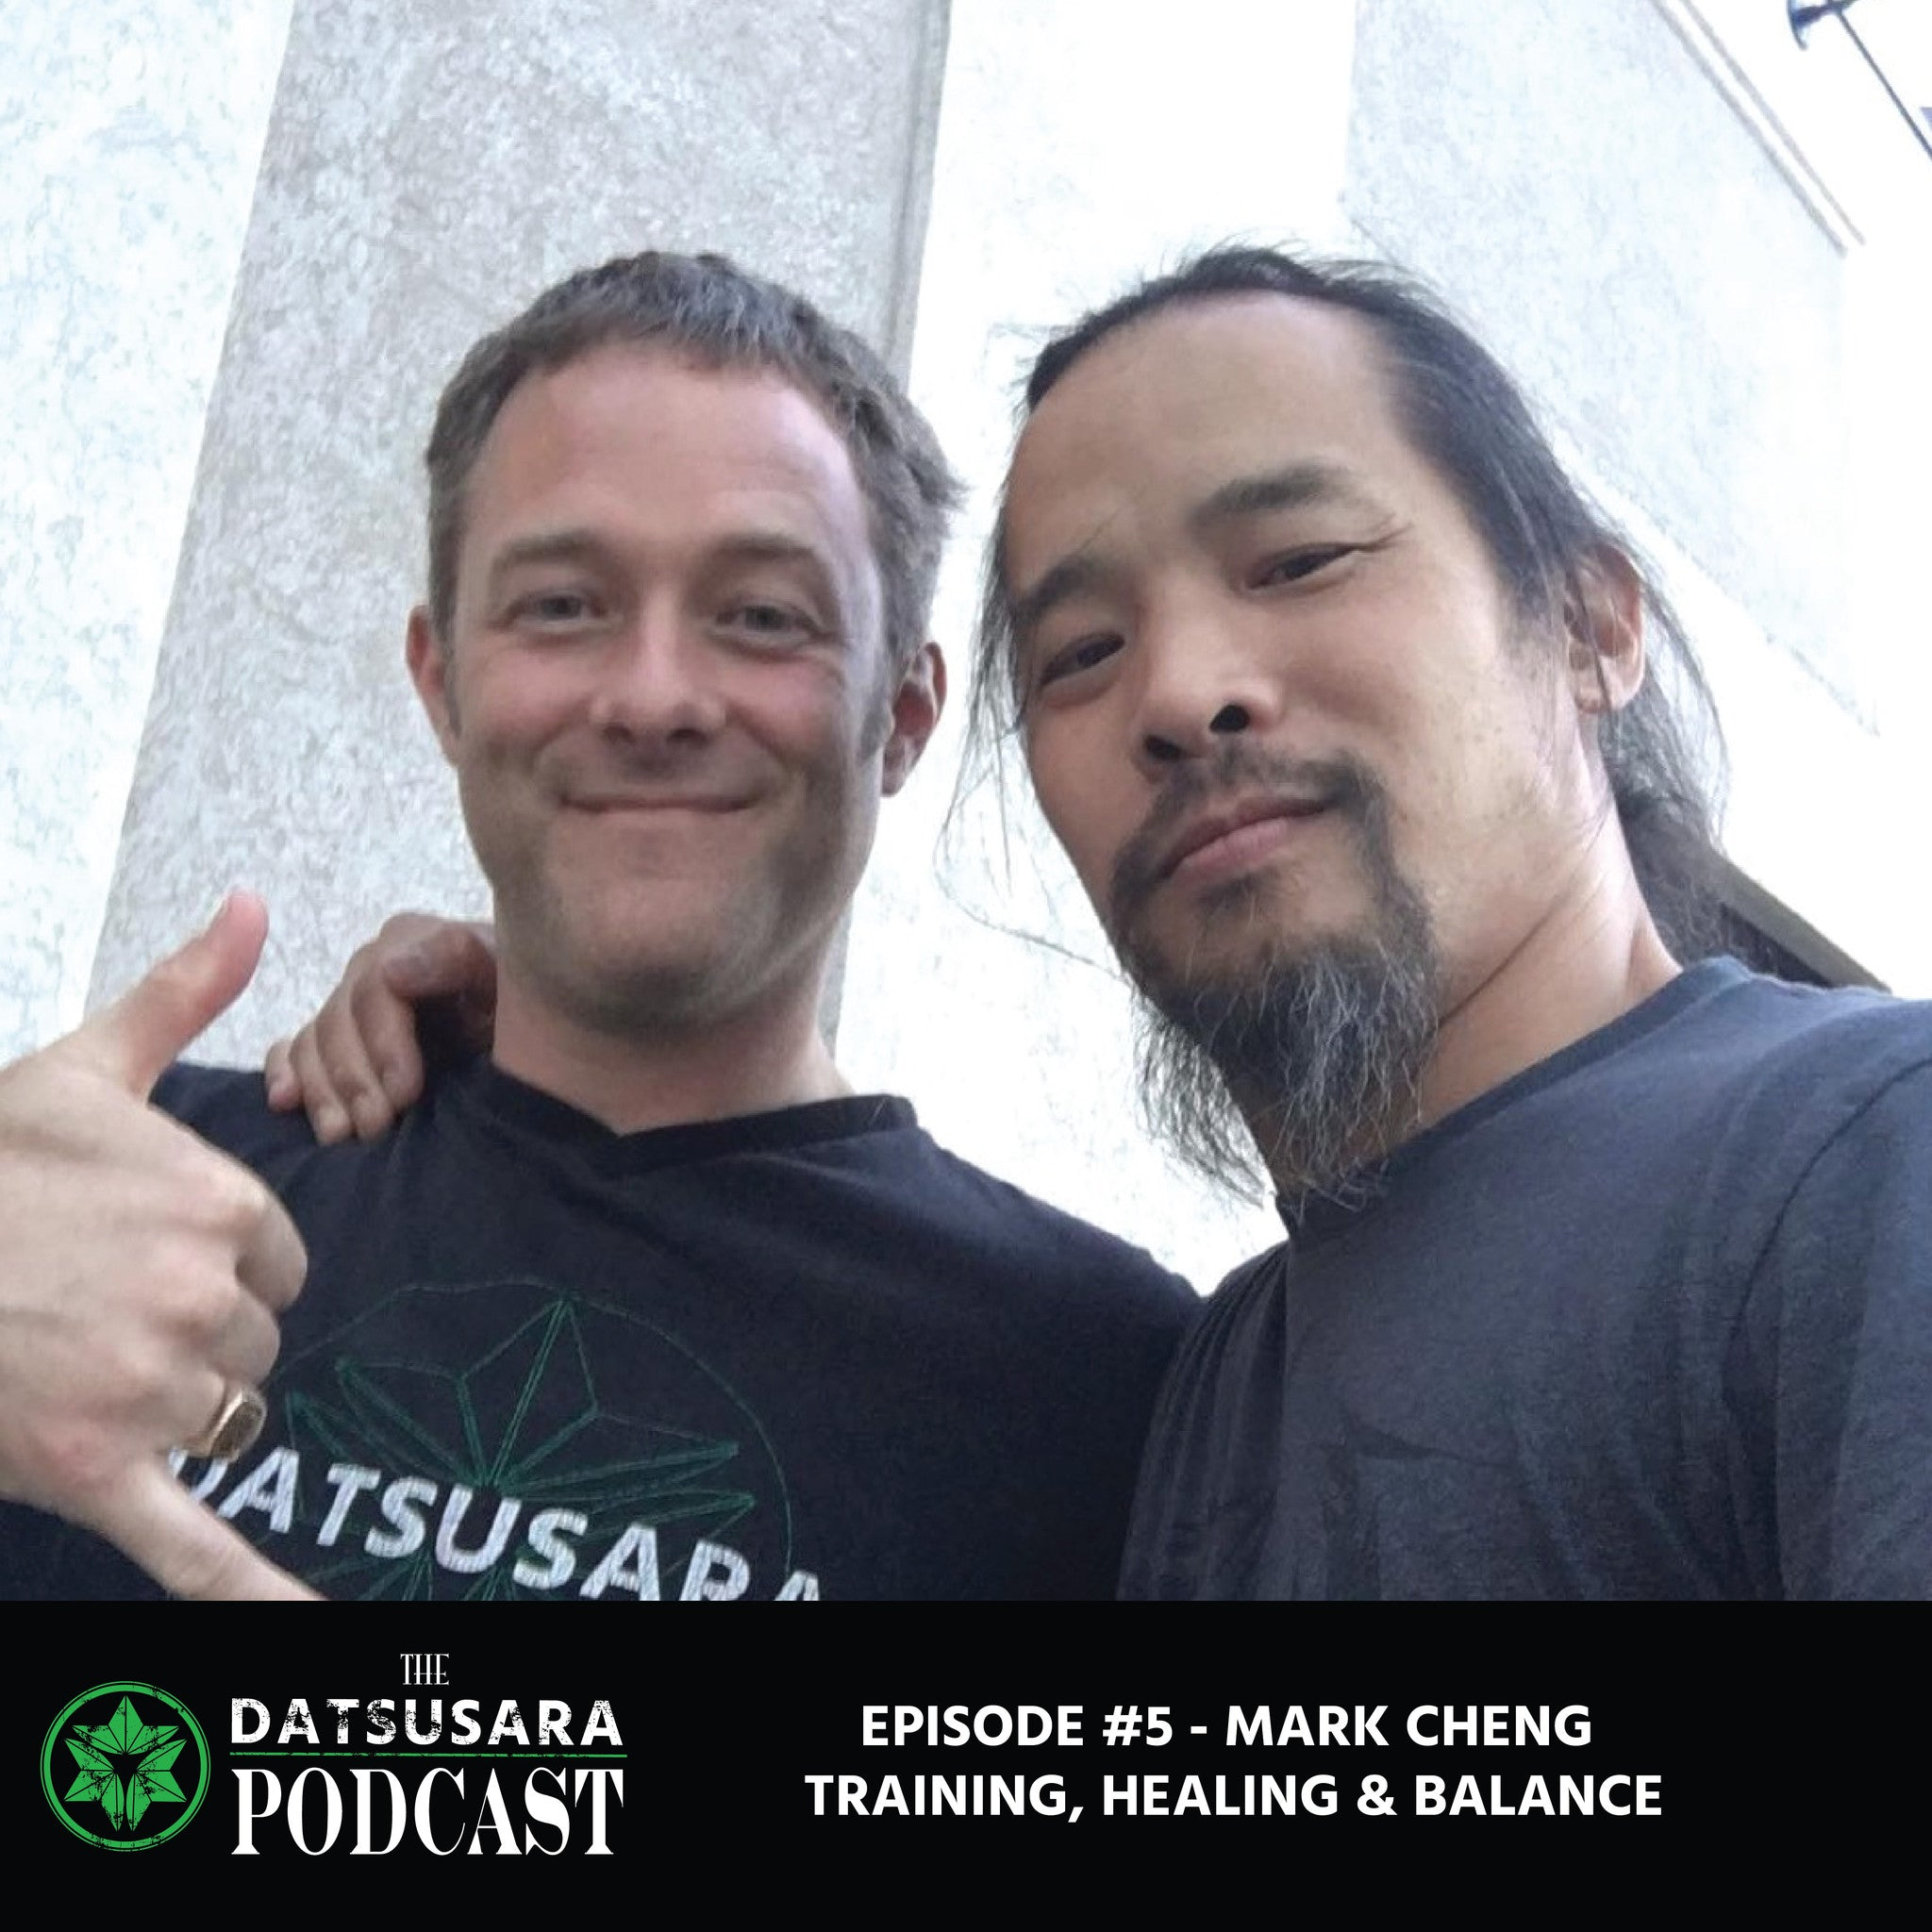 #5 - Mark Cheng - Training, Healing & Balance